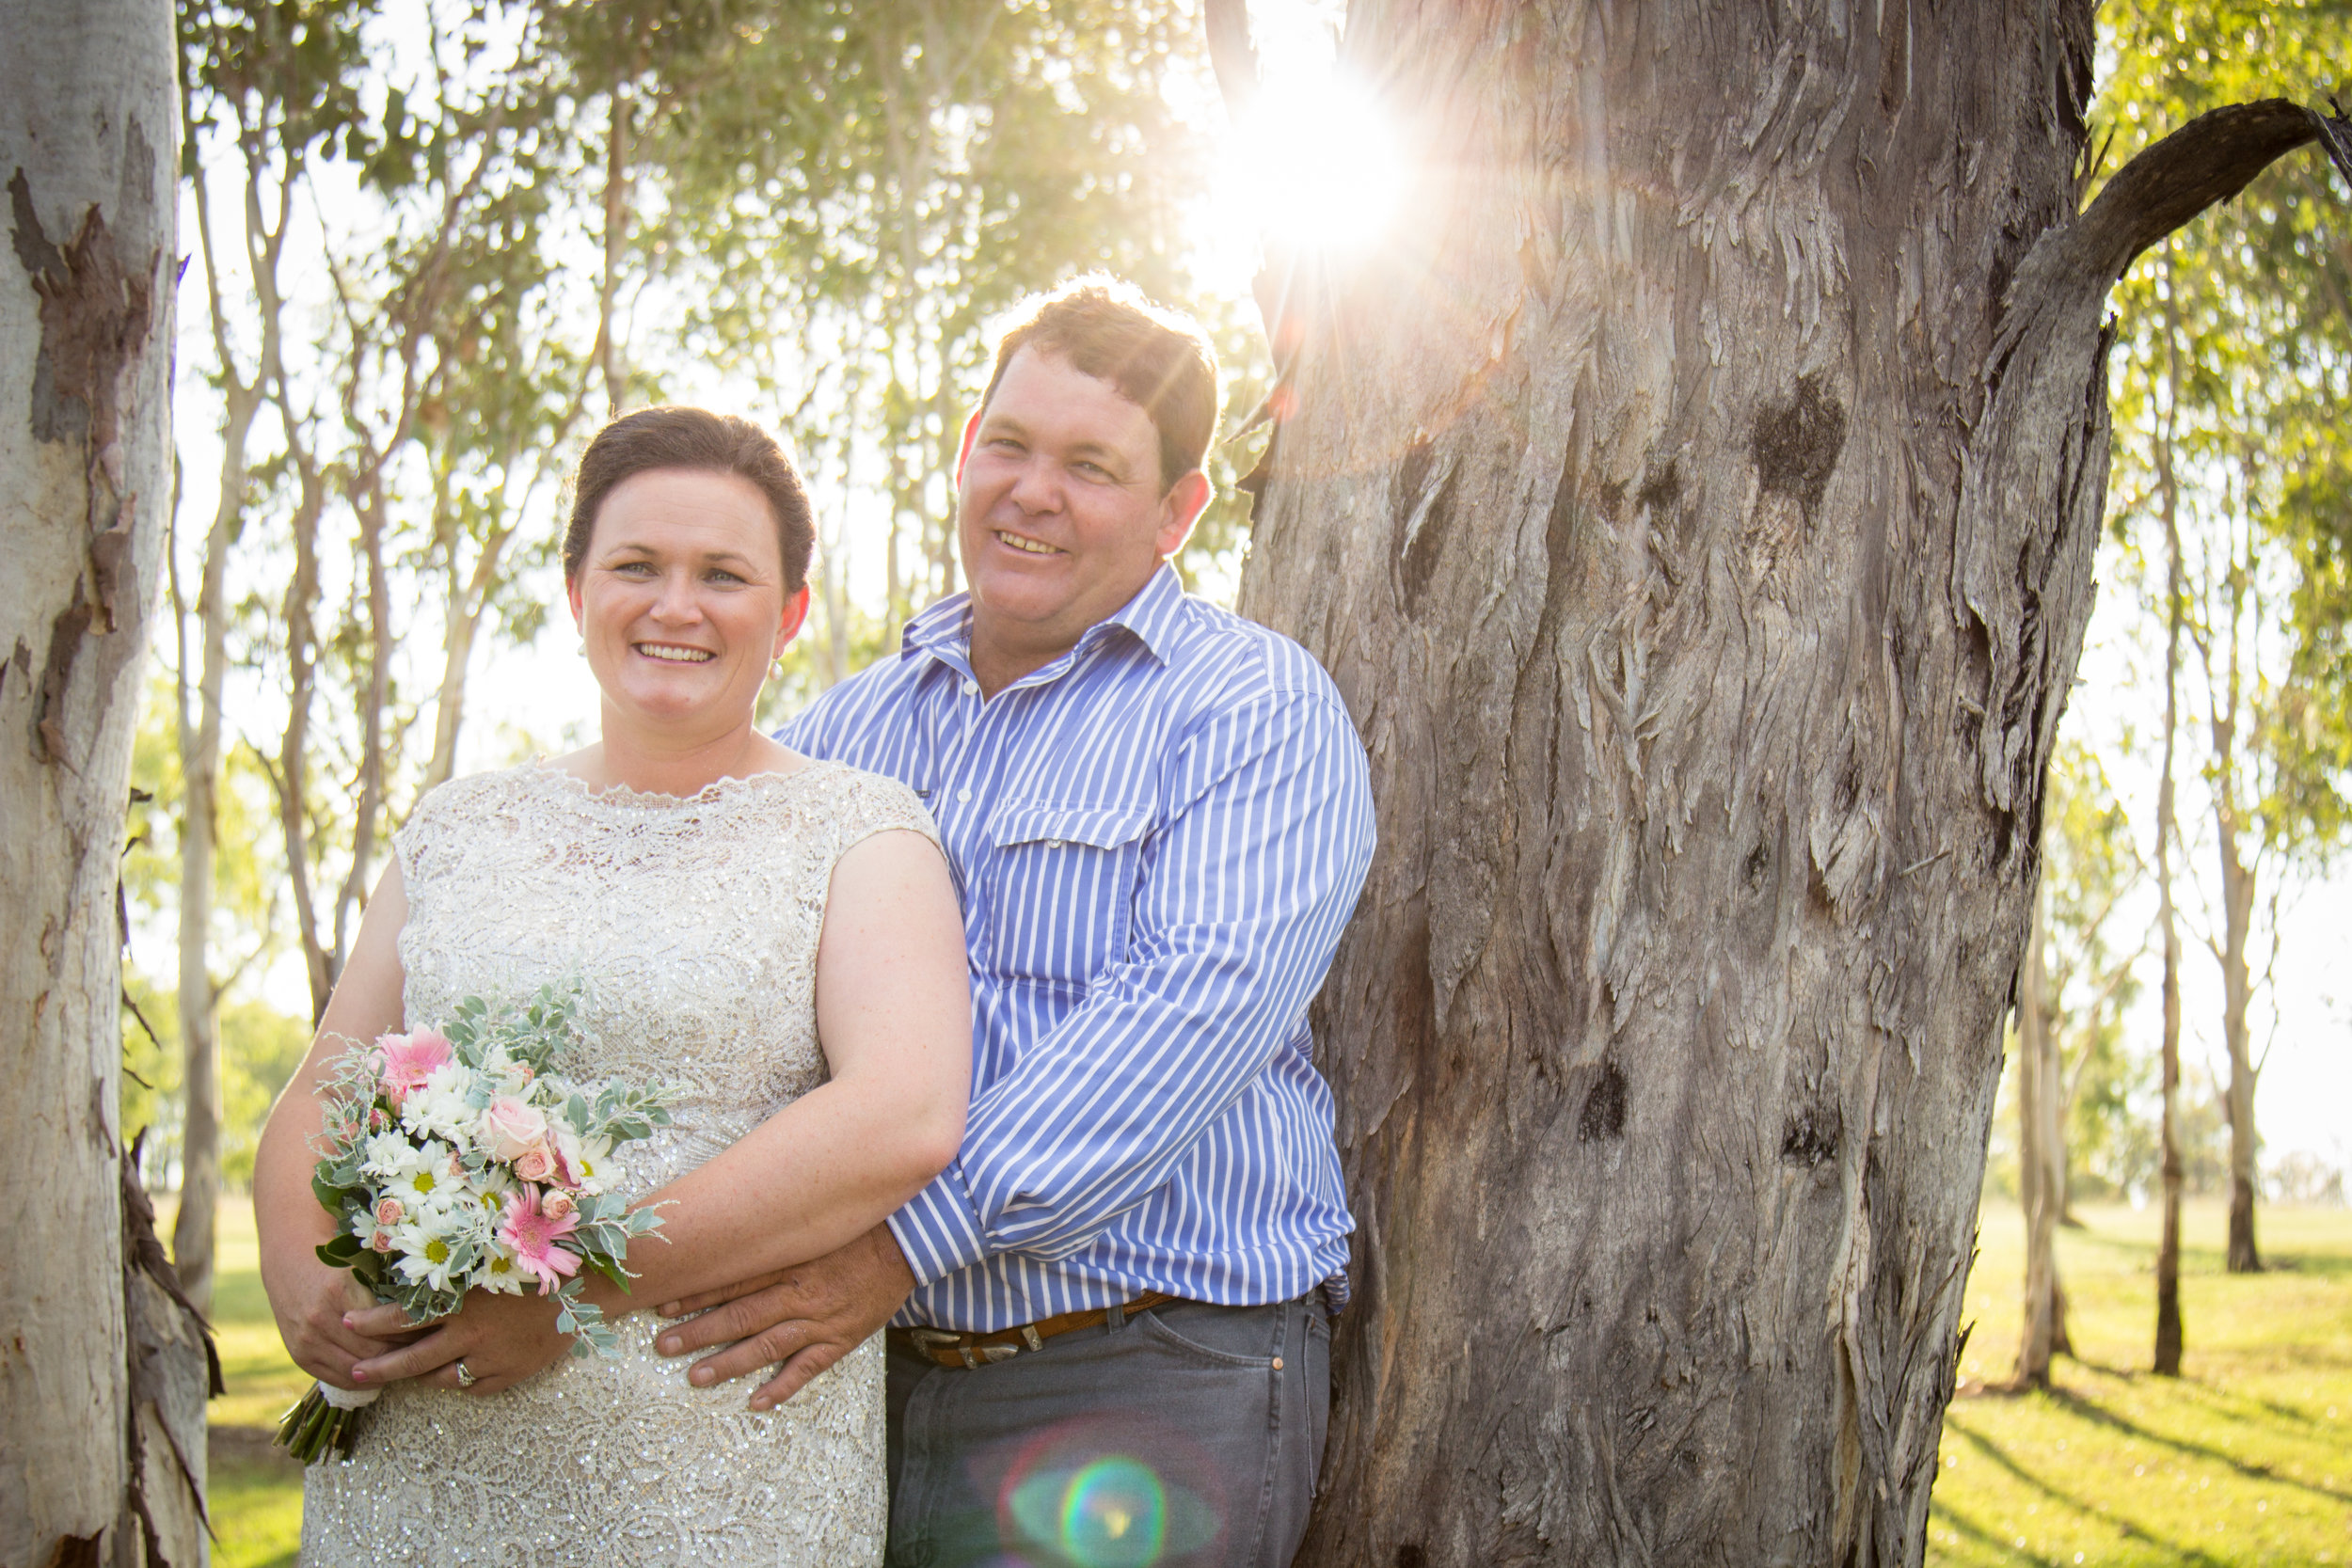 Lisa met Cameron while working with him at Anthony Lagoon station, and they married in 2016 at Boondooma Homestead, image supplied, photographer:Lynette Vicary.